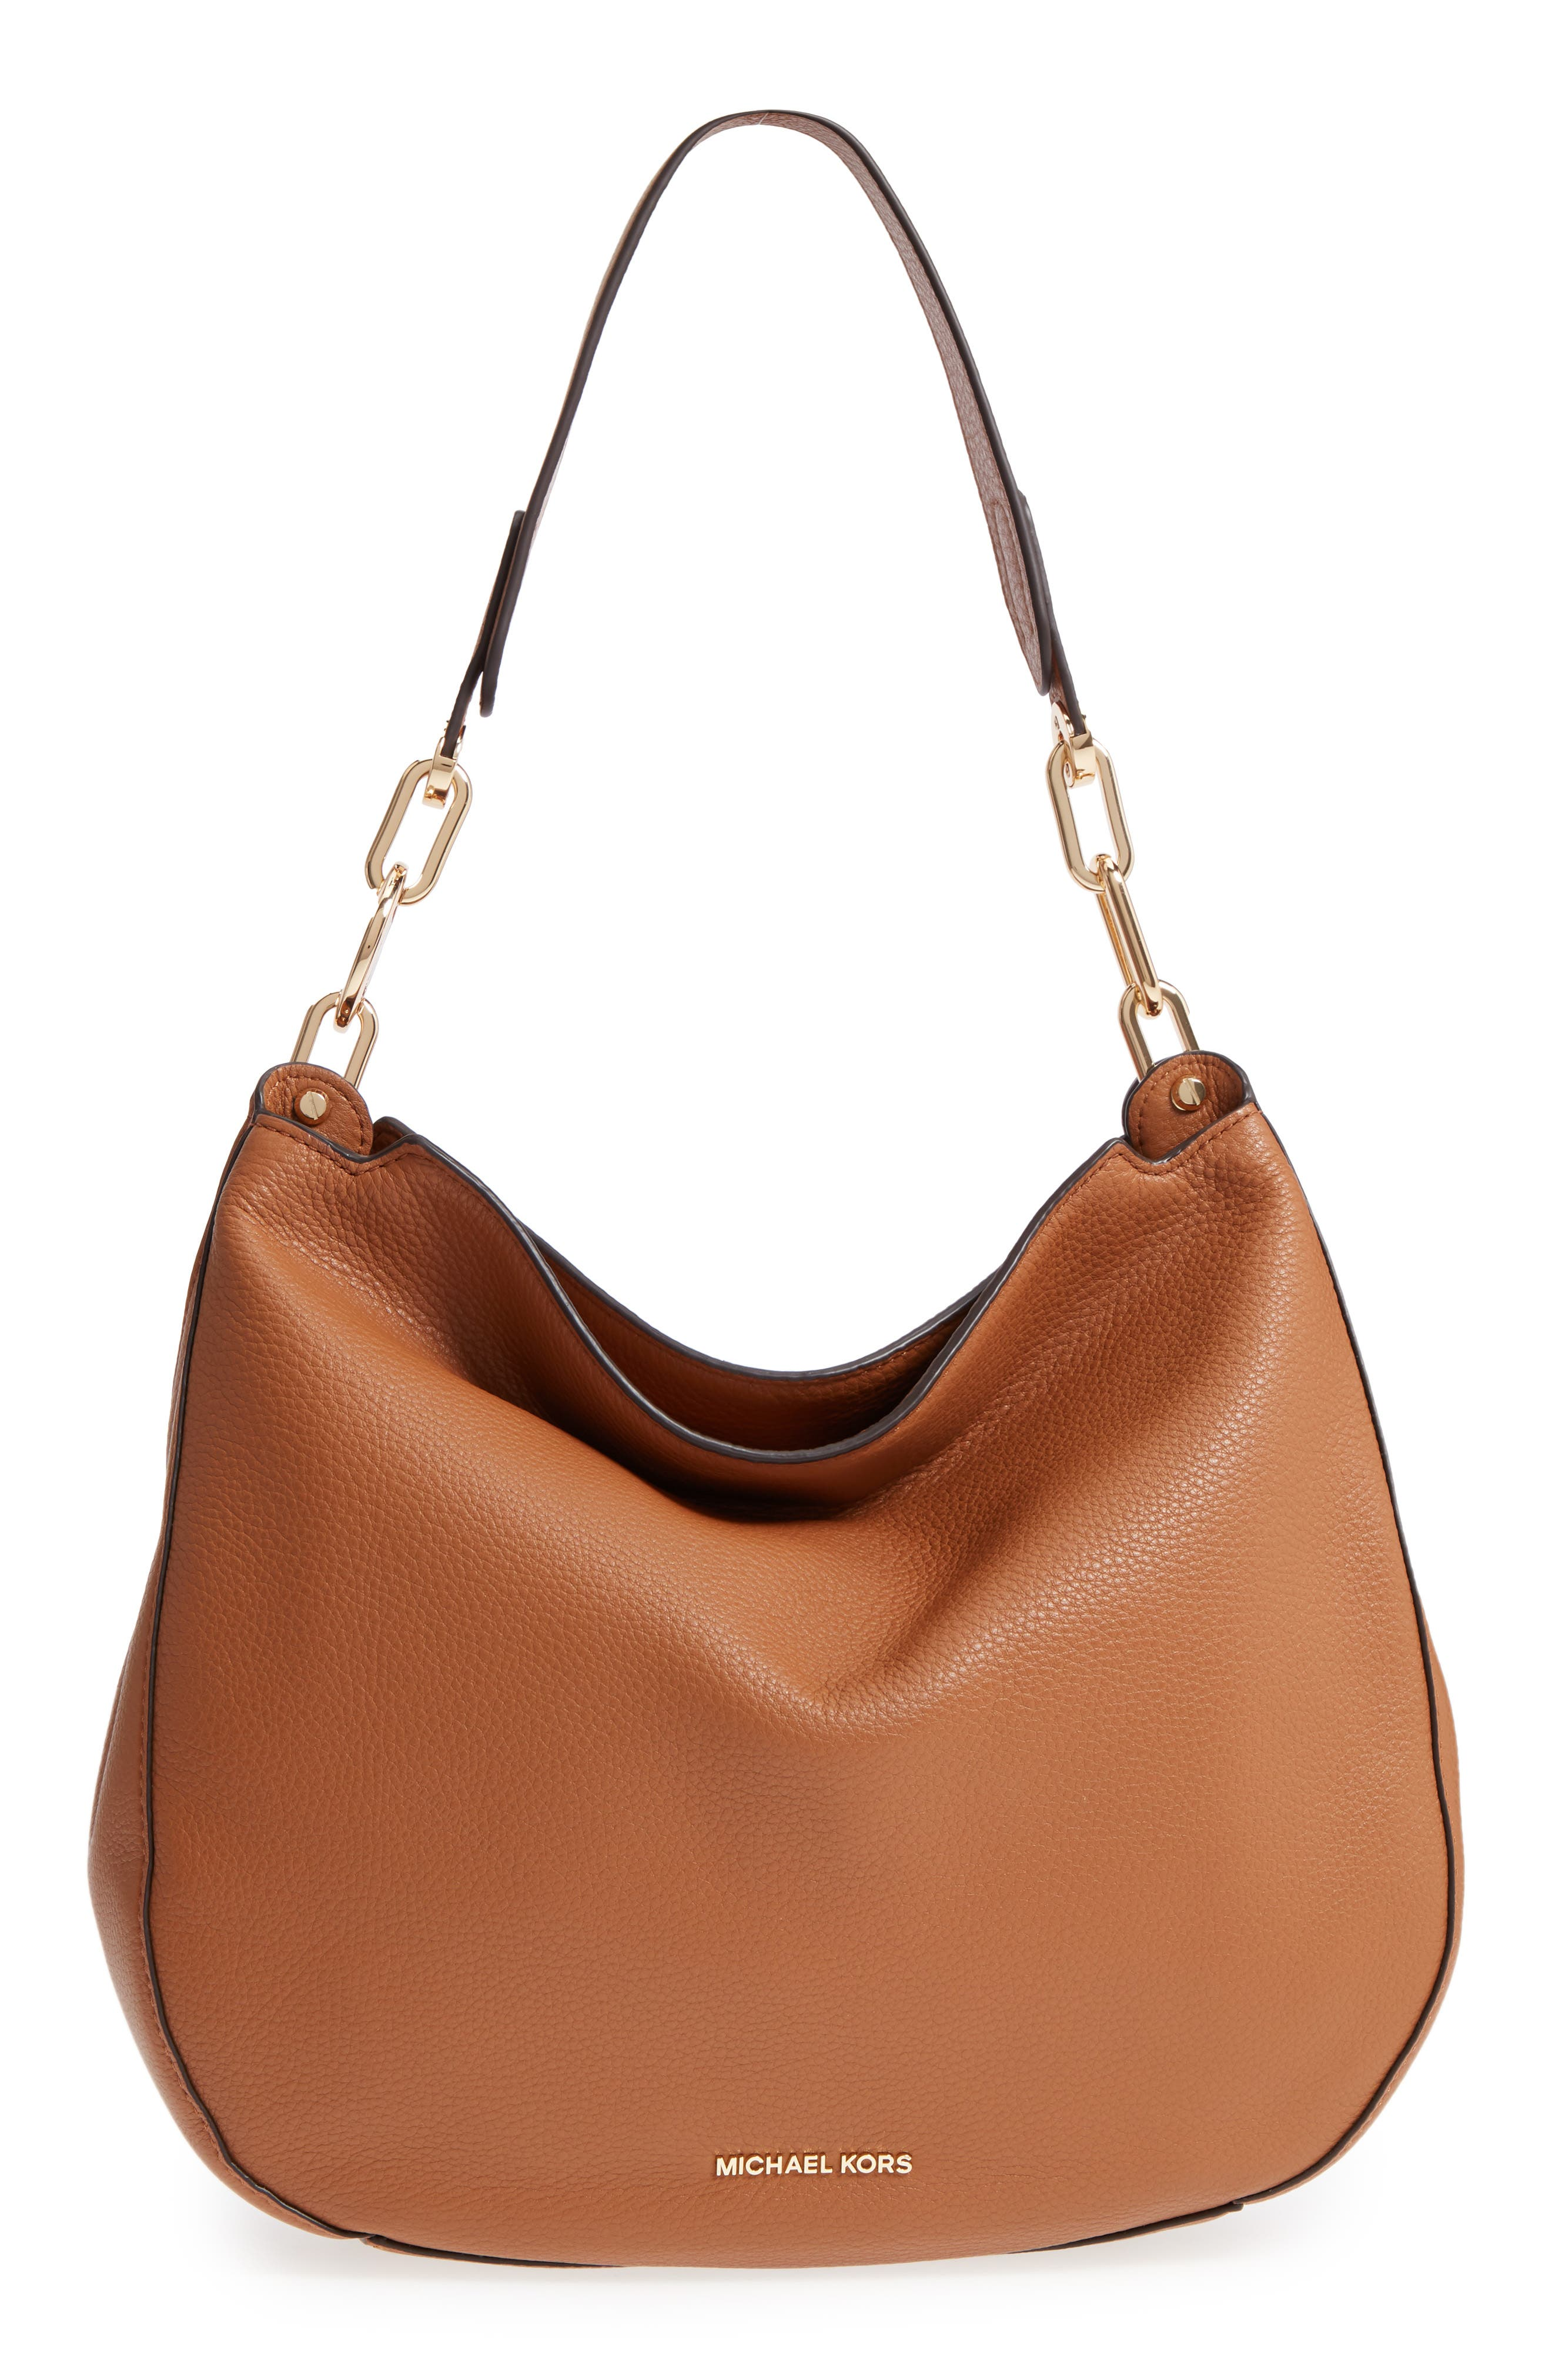 Michael Kors Fulton Leather Hobo